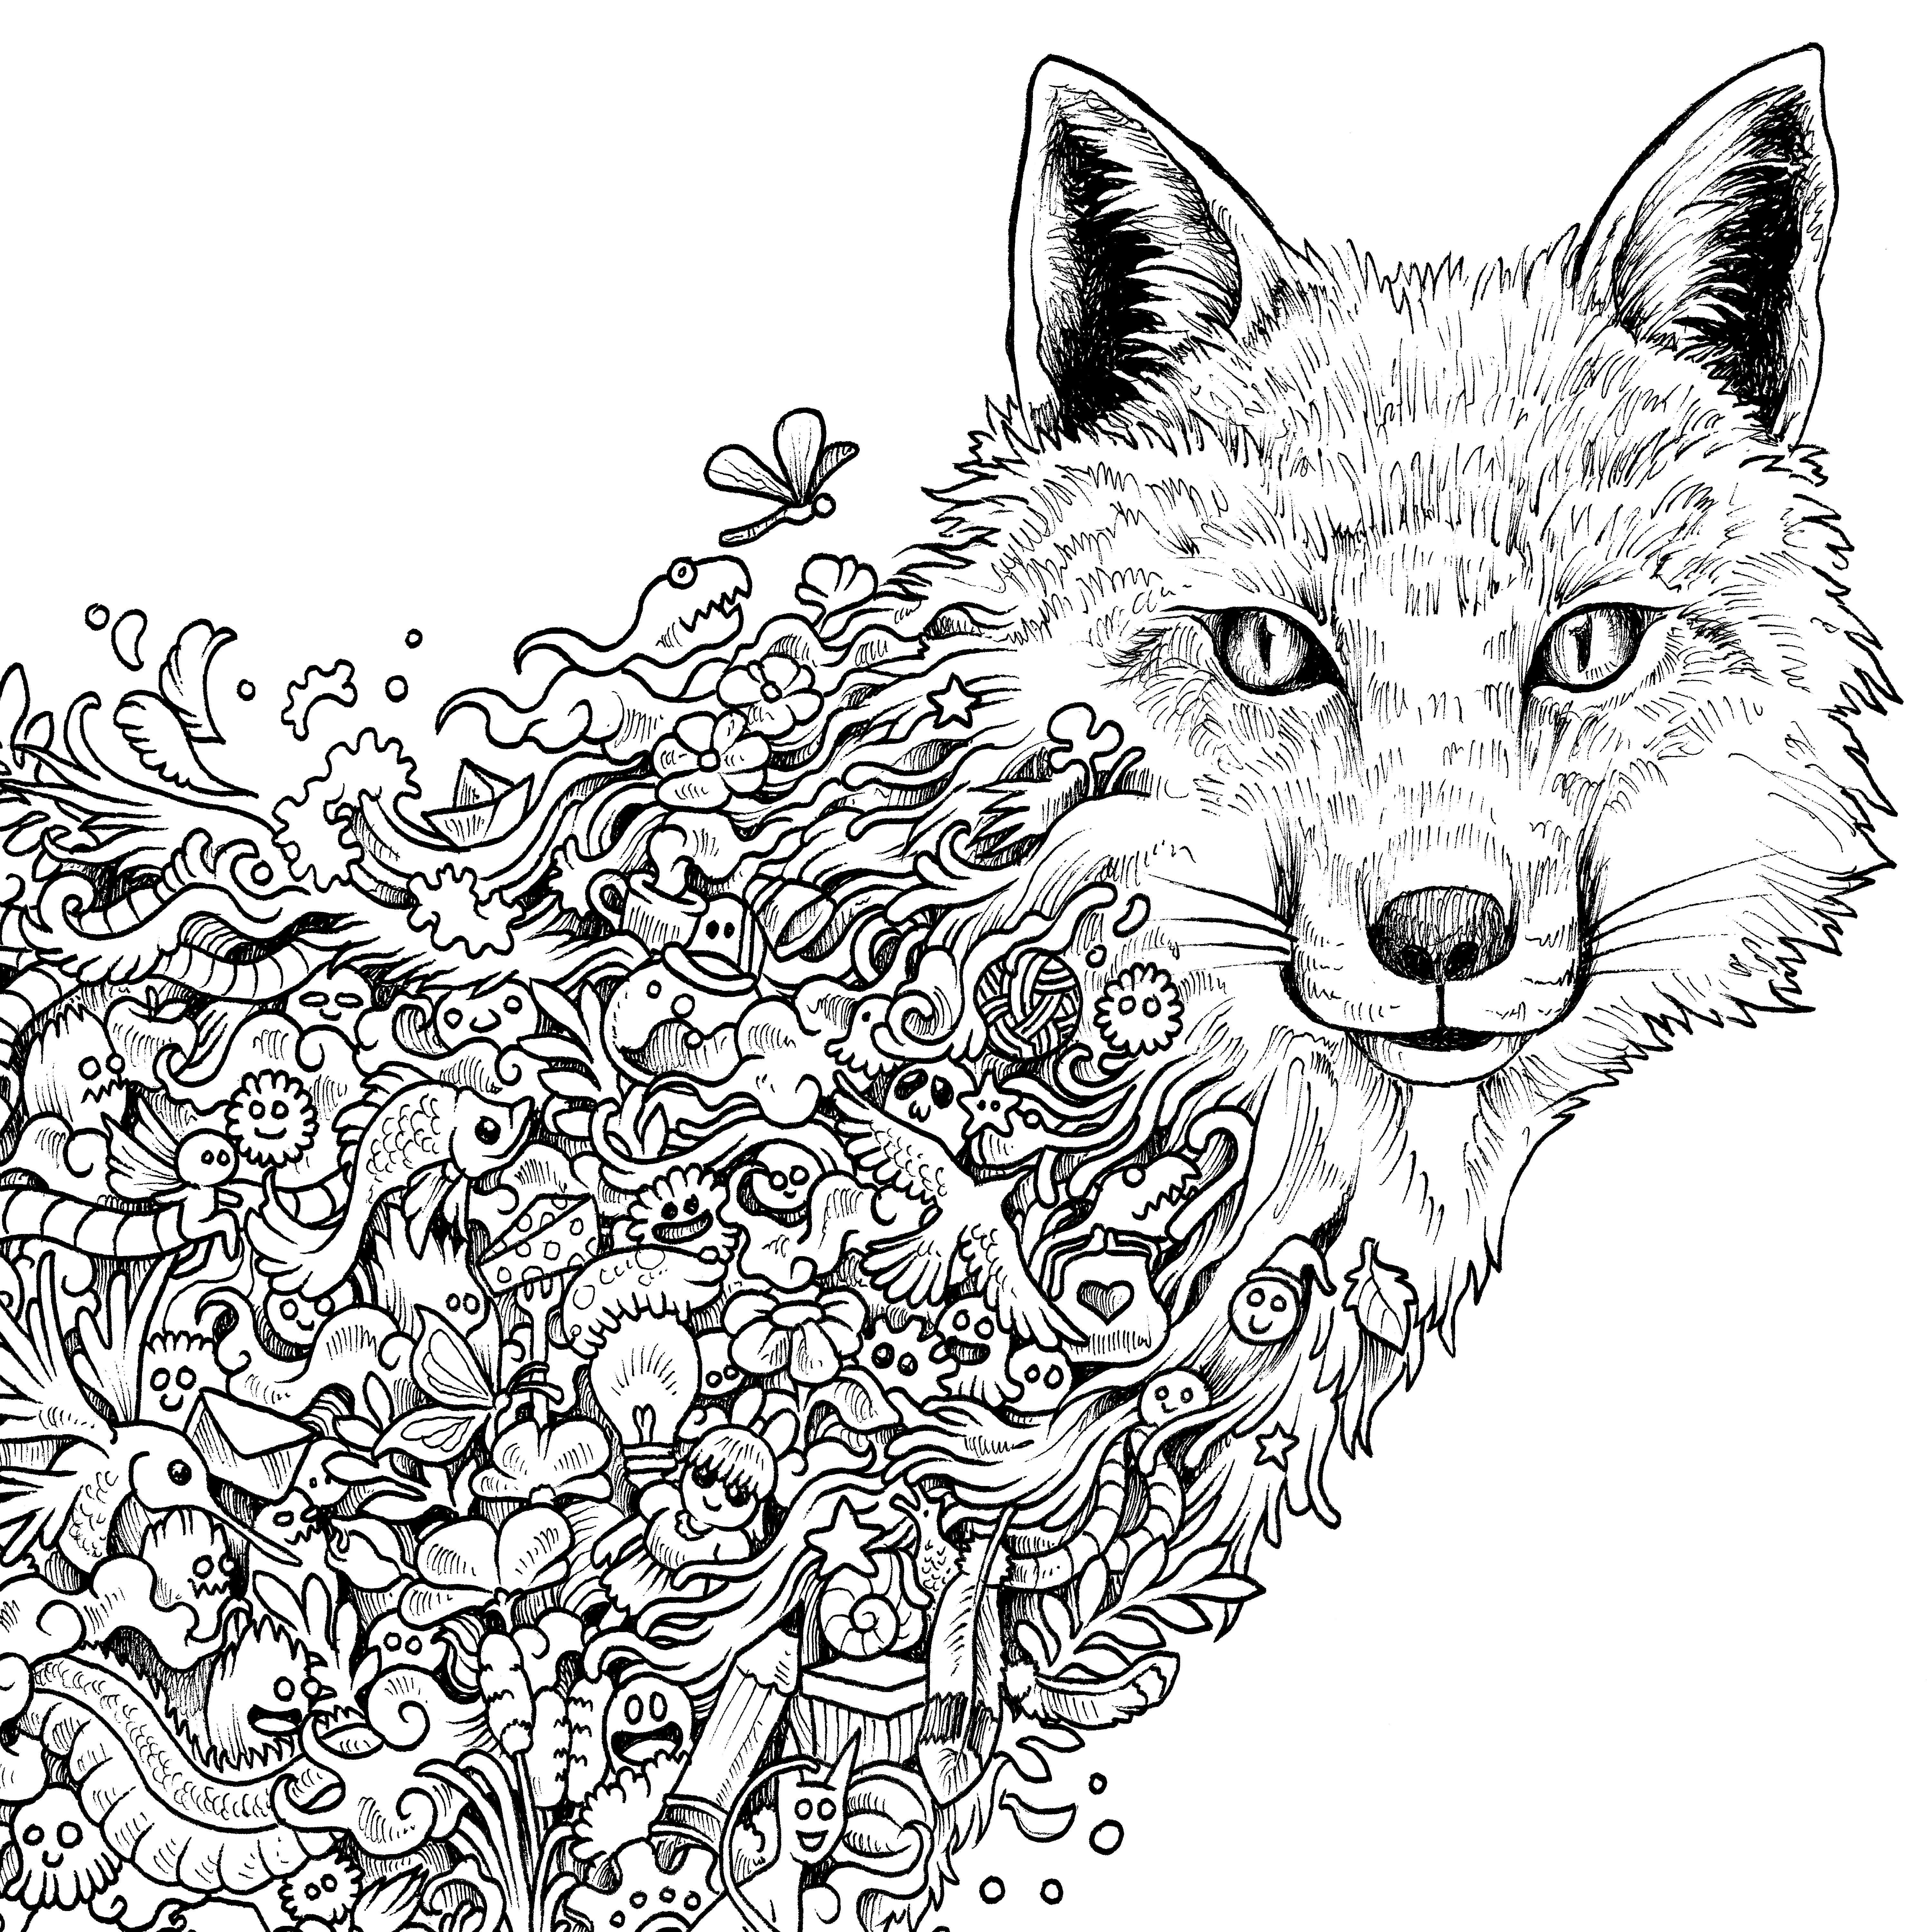 6000x6000 Wolf Coloring Pages For Adults Fresh Extreme Coloring Pages